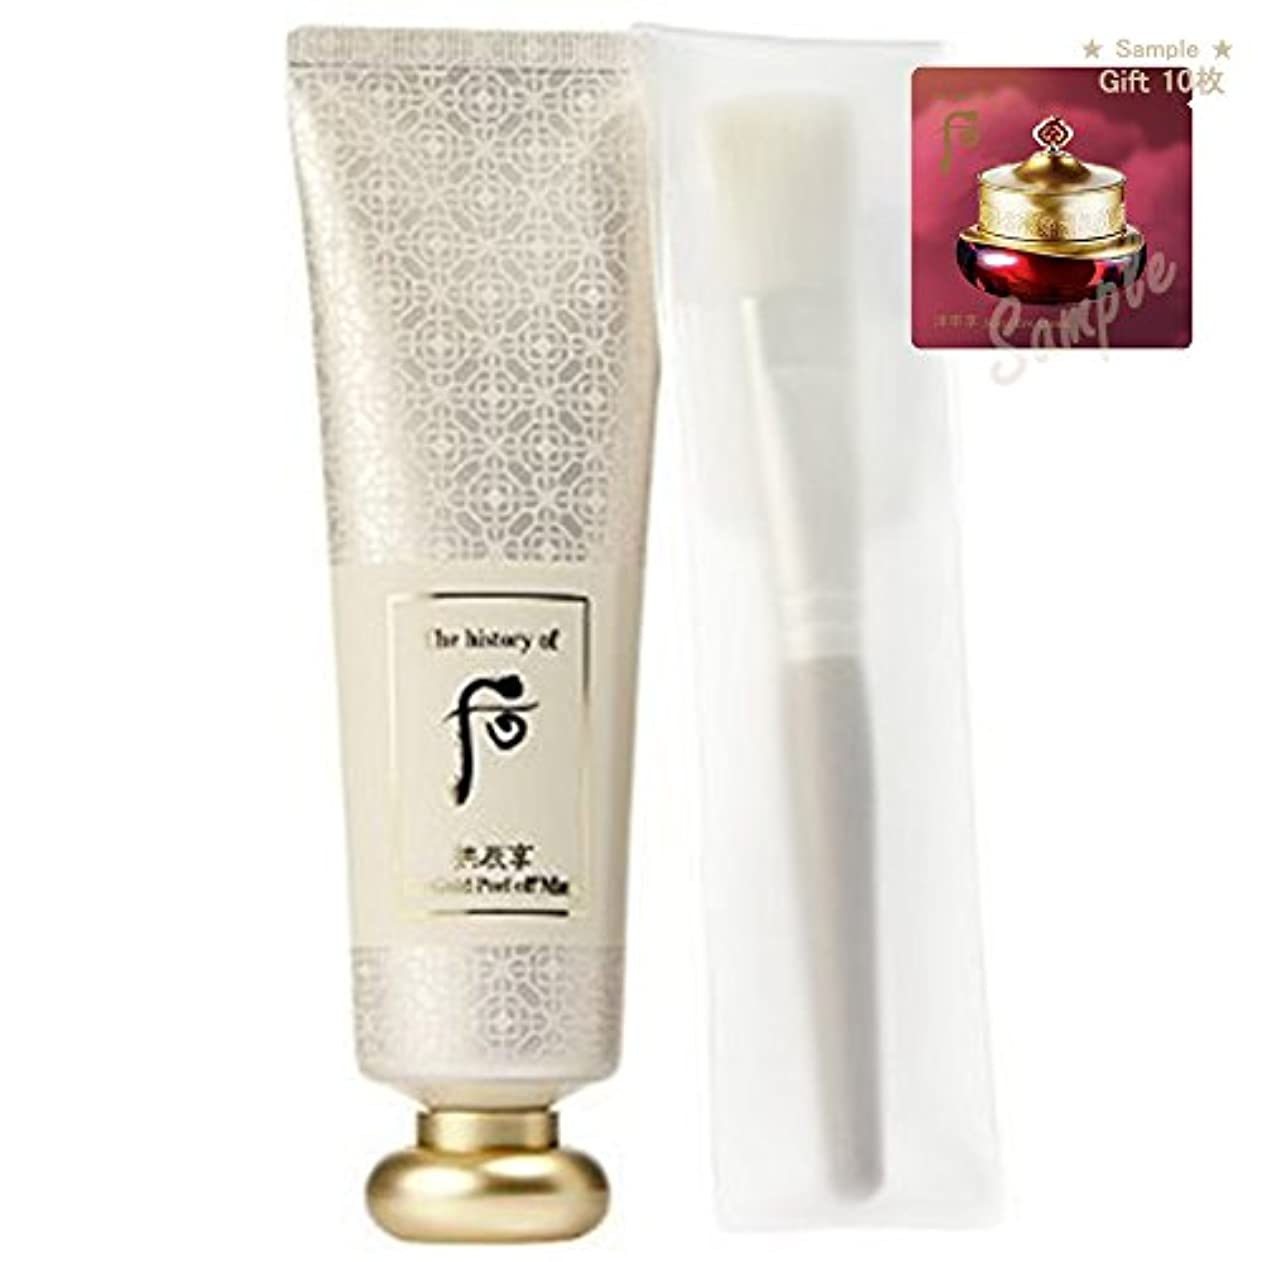 黒お母さんお願いします【フー/ The history of whoo]The History of Whoo Gongjinhyang Ul: Gold Peel off Mask 80ml/后(フー)ゴールドマスク + [Sample Gift...